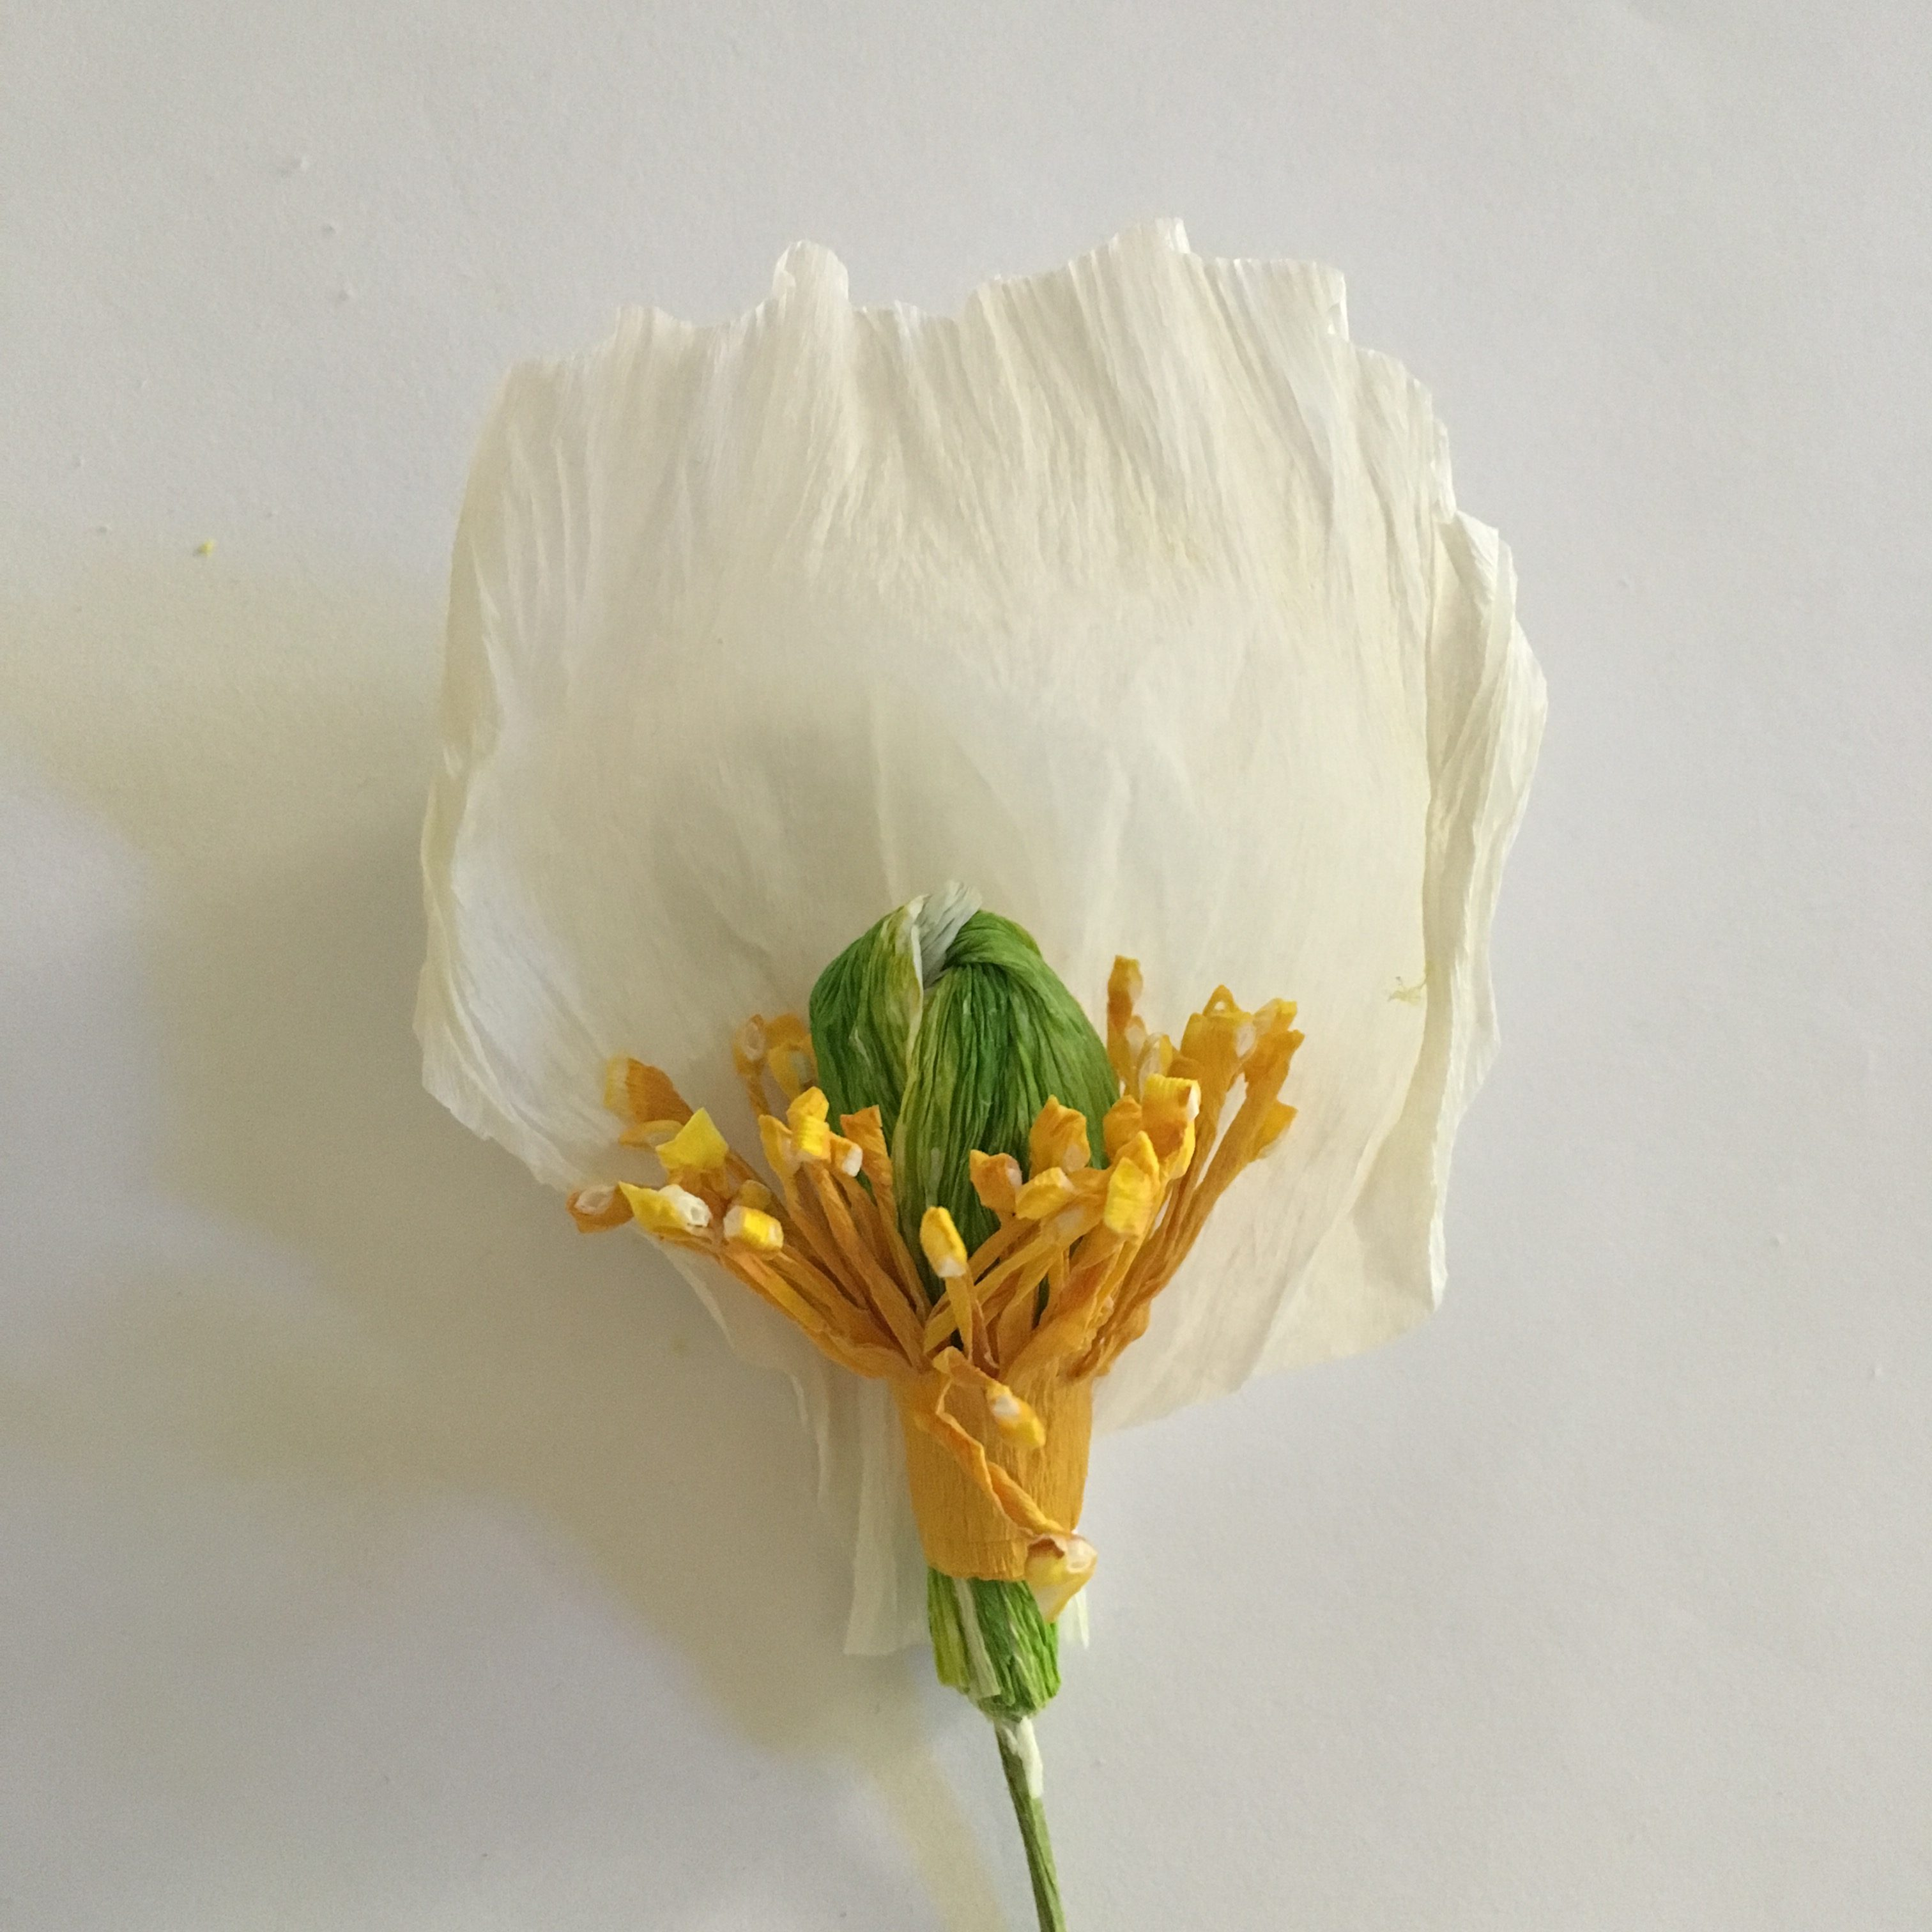 poppy flower - gluing the petals